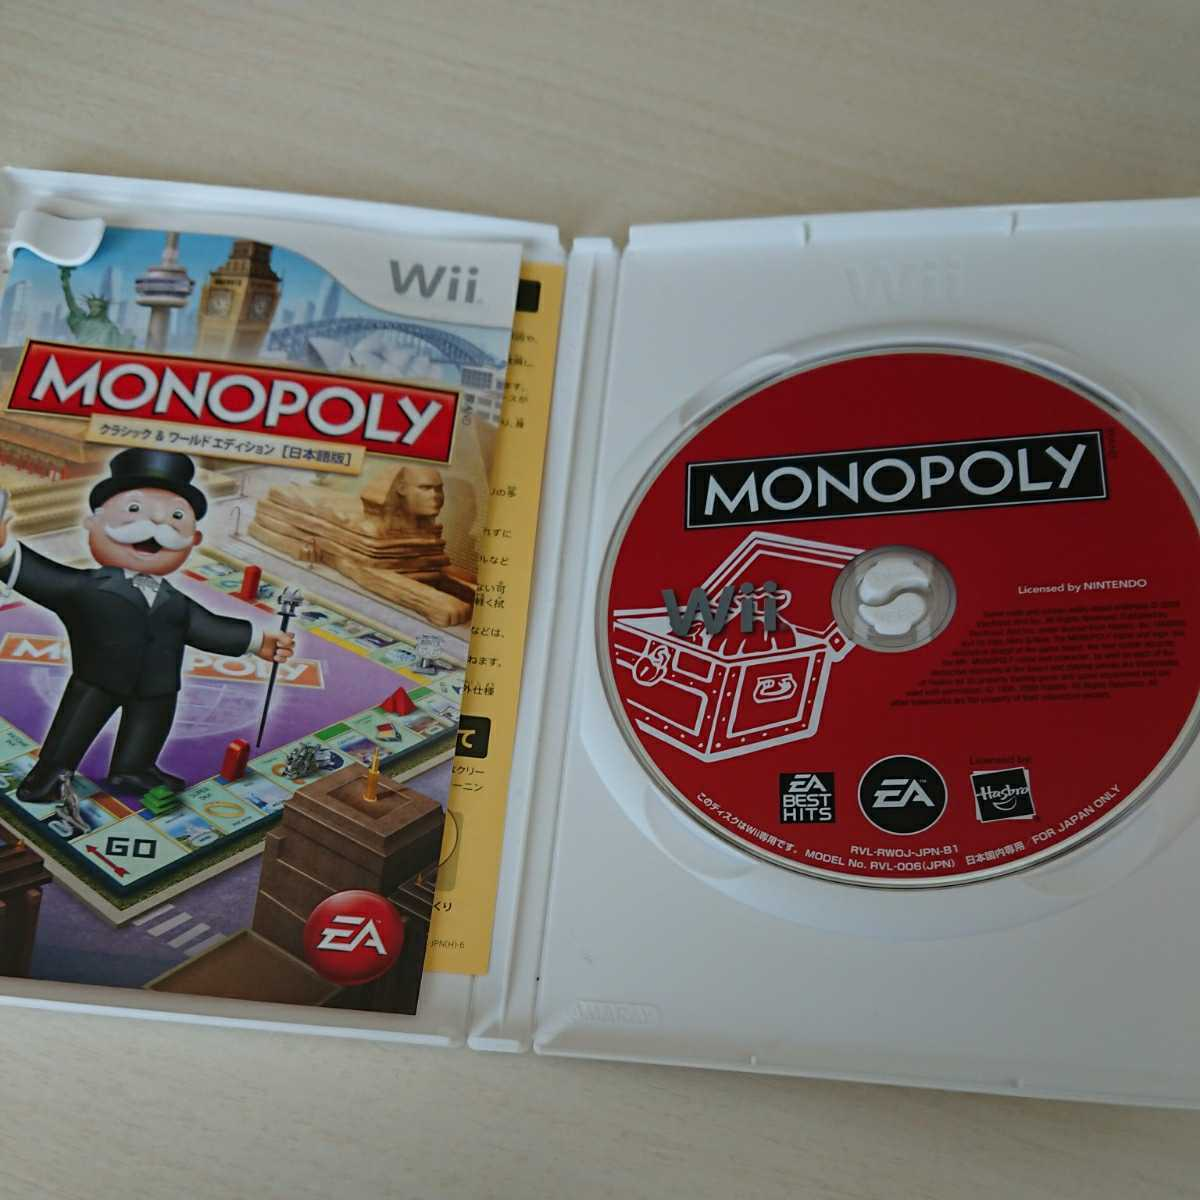 Wii ソフト モノポリー monopoly 動作確認済 送料無料!